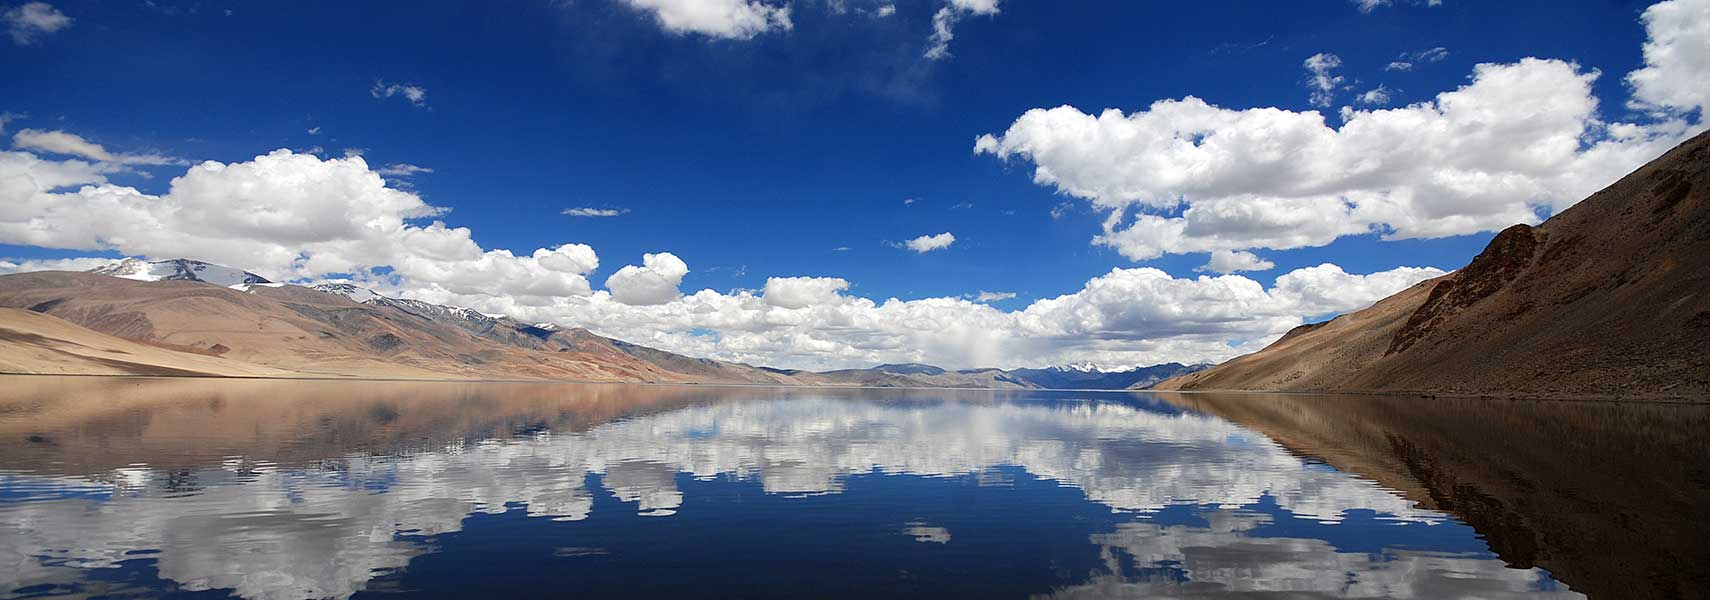 Lake Tso Moriri, Ladakh, Jammu and Kashmir, India